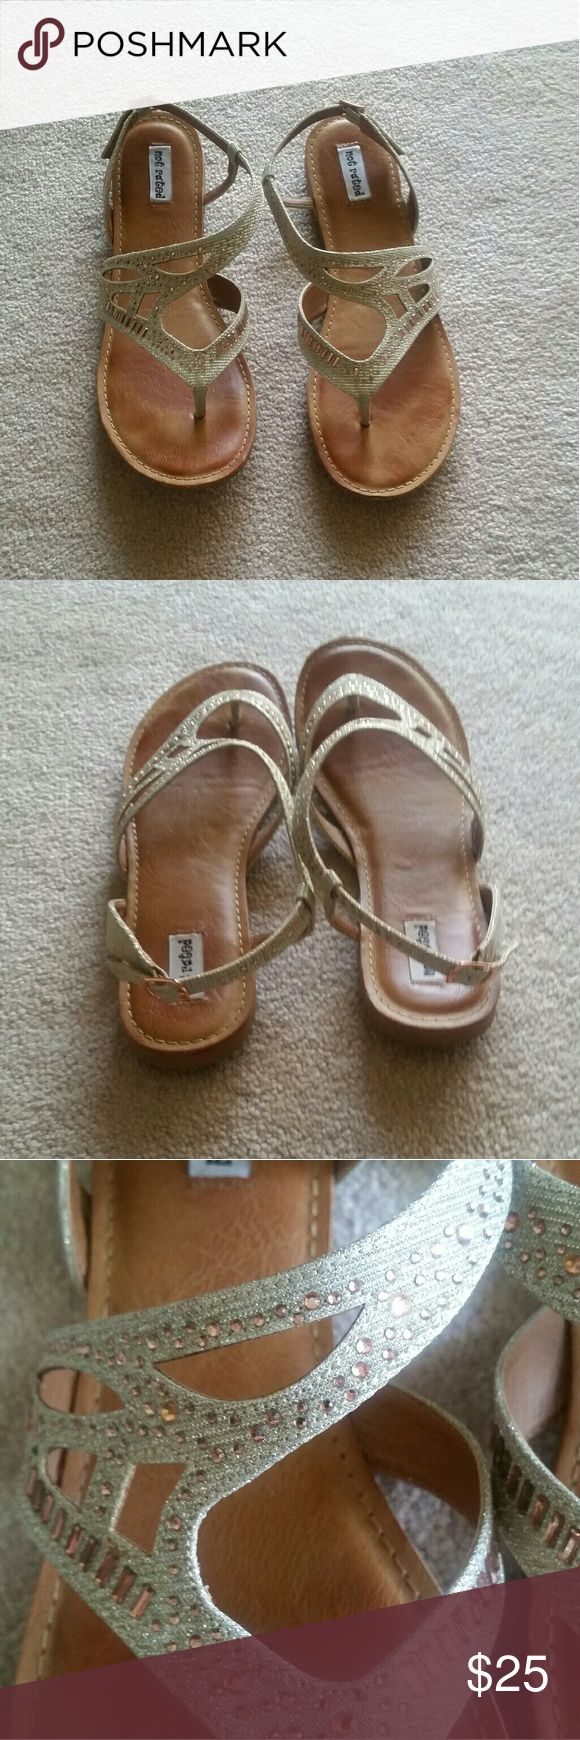 Not Rated sandals Beautiful Not Rated sandals. Cream color with rose gold rhinestones. Has buckle on the back to tighten or loosen. Only worn once, in perfect condition! Size 11 but fits like 10 (which is why I posted them as 10) Not Rated Shoes Sandals